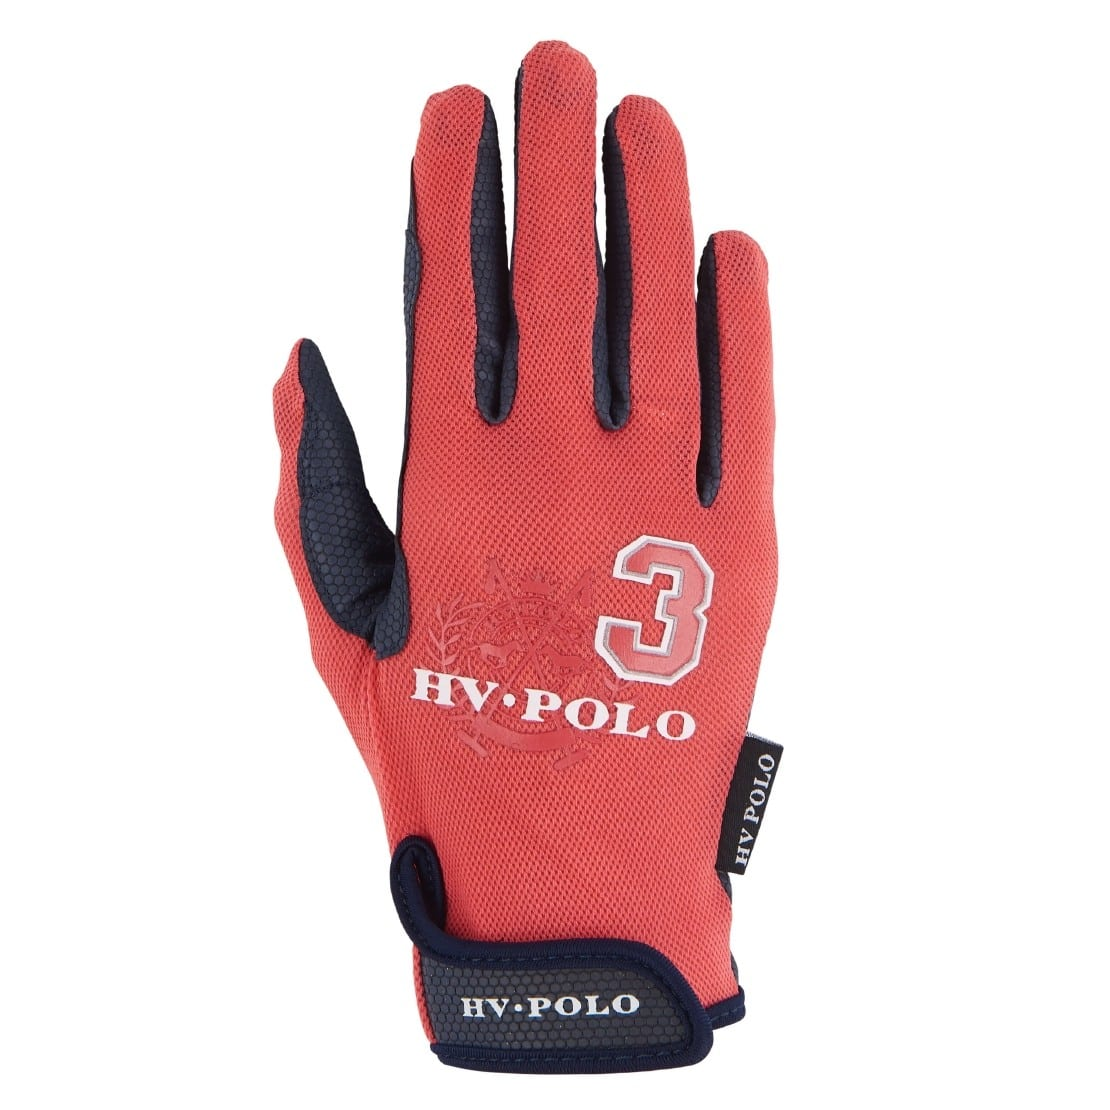 Handschuhe Favouritas S Bright Coral